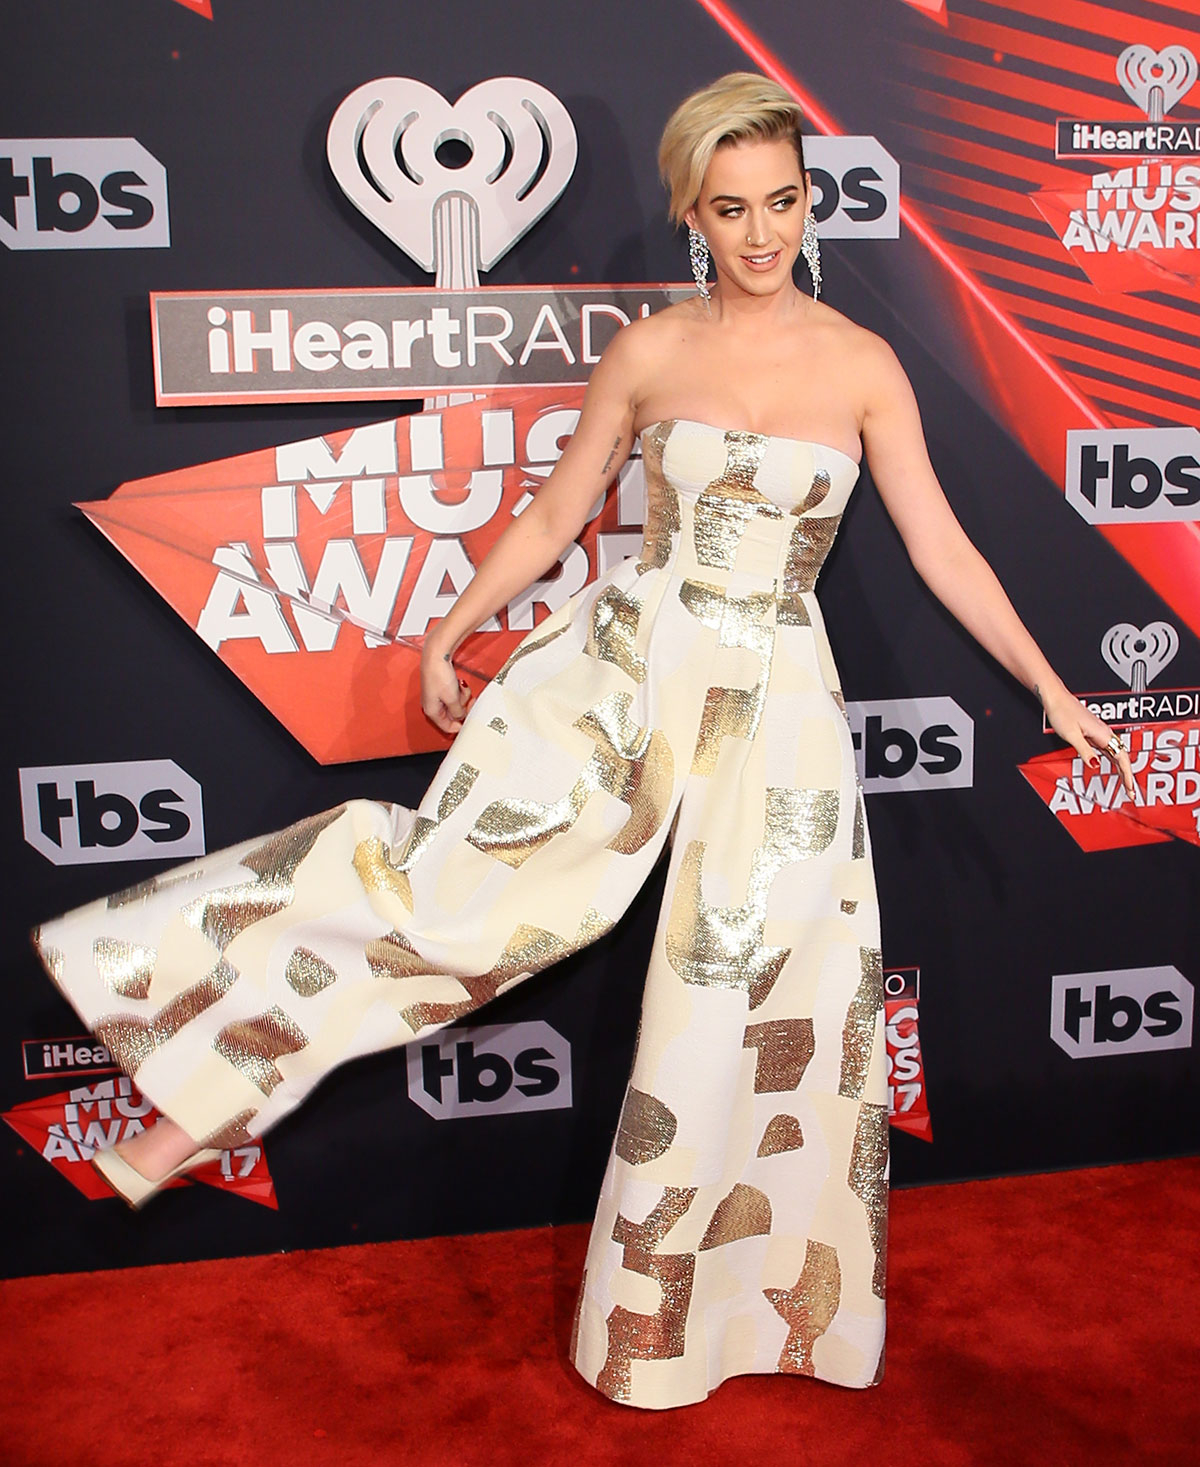 Katy Perry shows off her designer jumpsuit on the iHeartRadio Music Awards 2017 red carpet